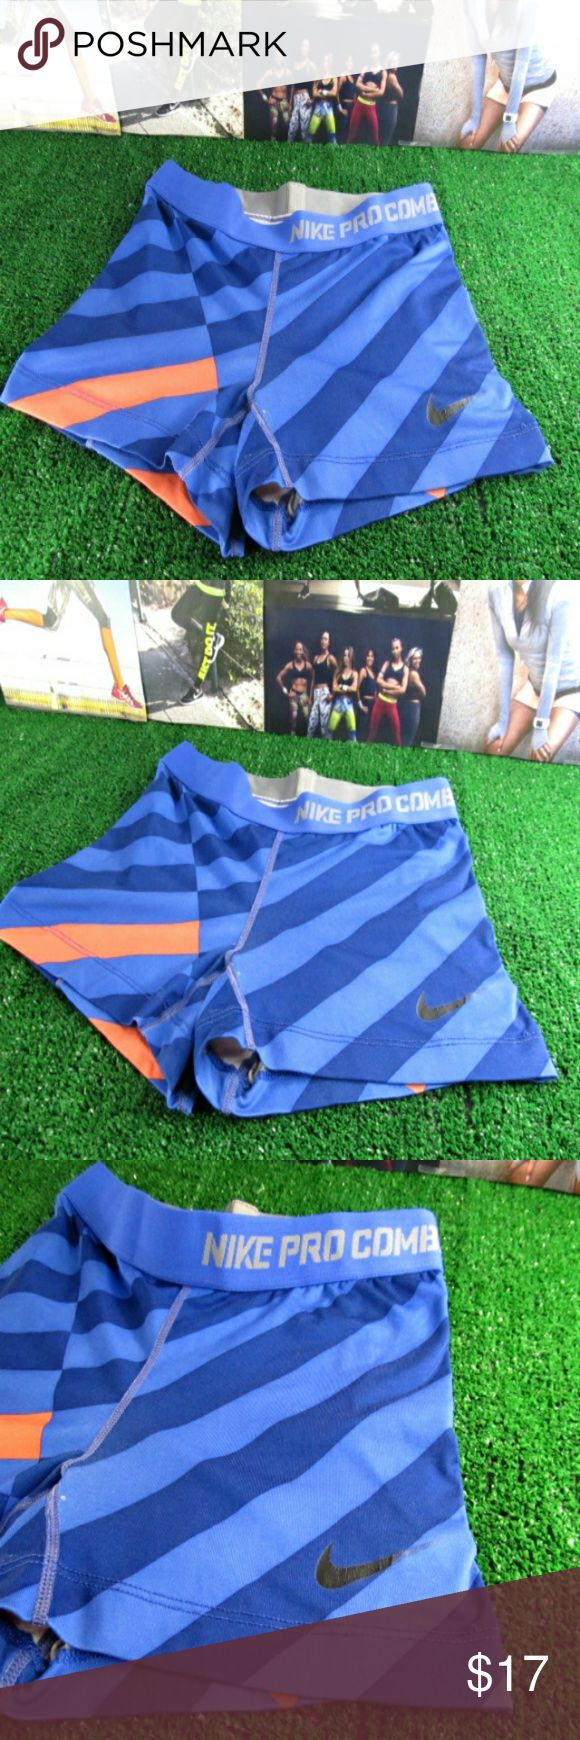 "Nike Dri-Fit Compression Shorts Super comfy Nike Dri-Fit compression shorts. Perfect for hitting the gym or a workout outside. Royal Blue & Darker Blue shaded stripes pattern throughout. Peachy Orange designs with ""Nike Pro Combat"" across the waist band. In overall great pre-loved condition. Size Small.  **Item ships same day if ordered by 4:00 P. M. Central Daylight Time. All orders placed after business hours are shipped the next day.** Made in the USA Shorts"